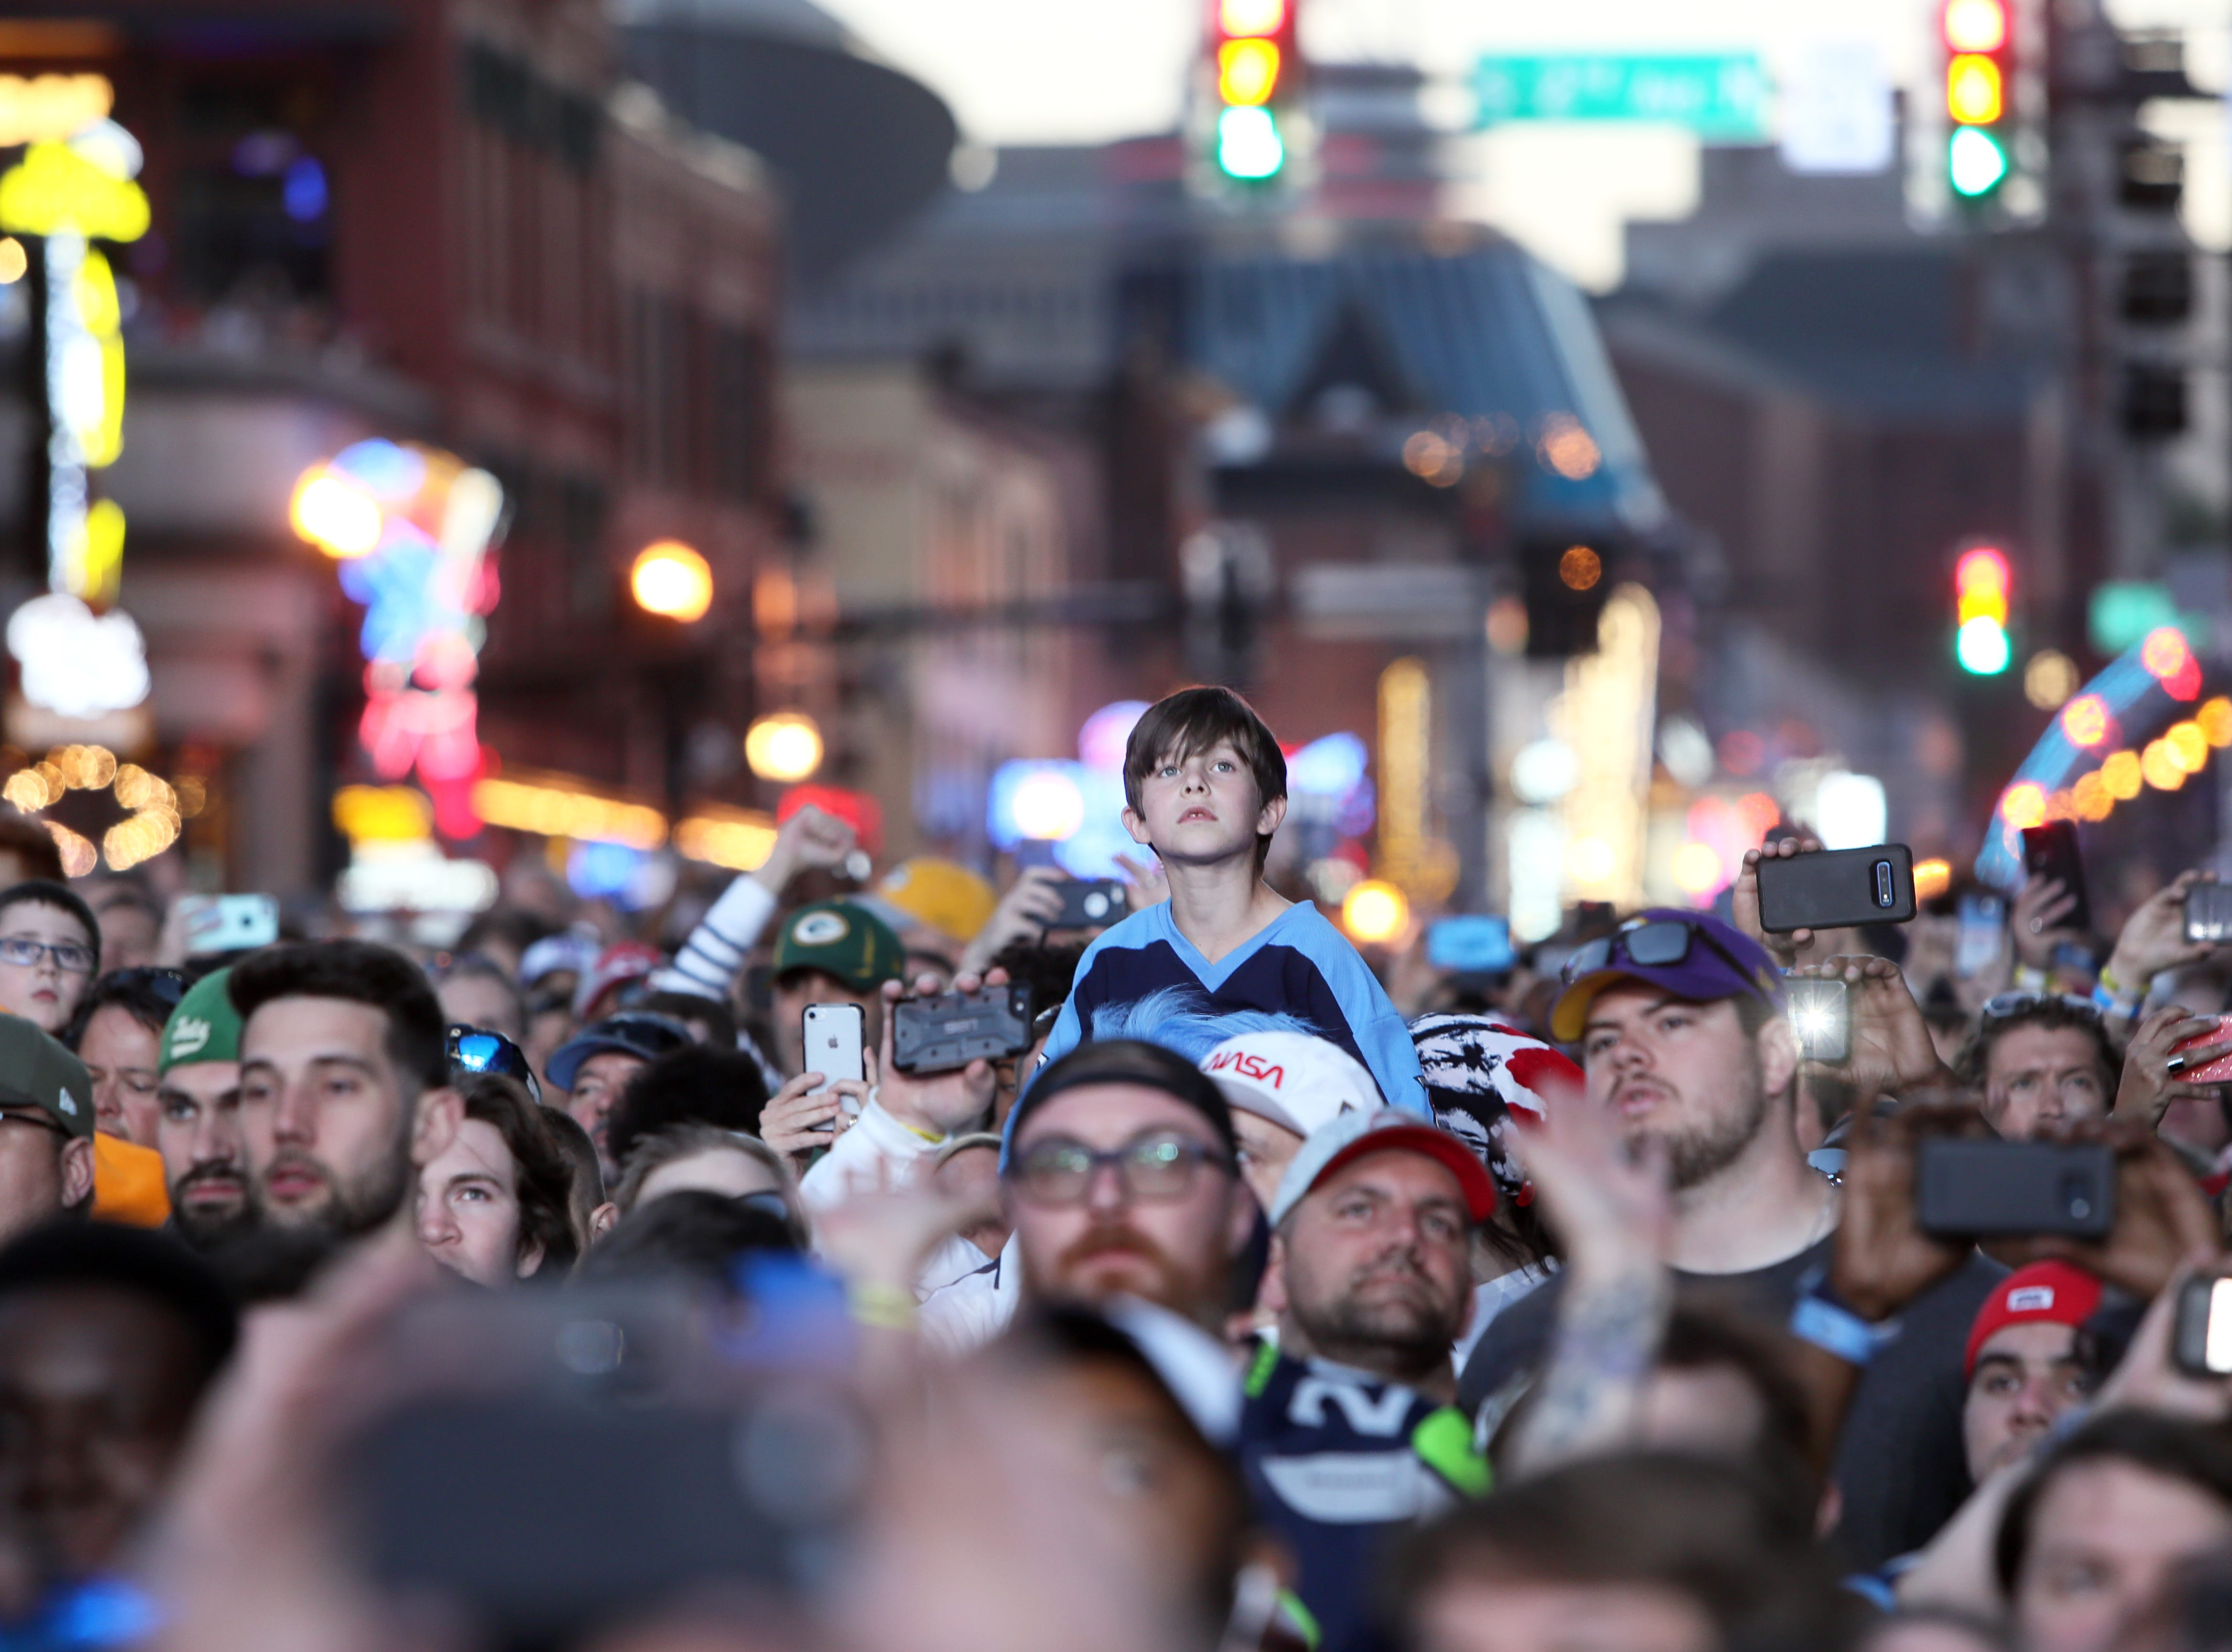 Fans watch as the selection show continues on the NFL draft's second night on Lower Broadway in downtown Nashville on Friday, April 26, 2019.